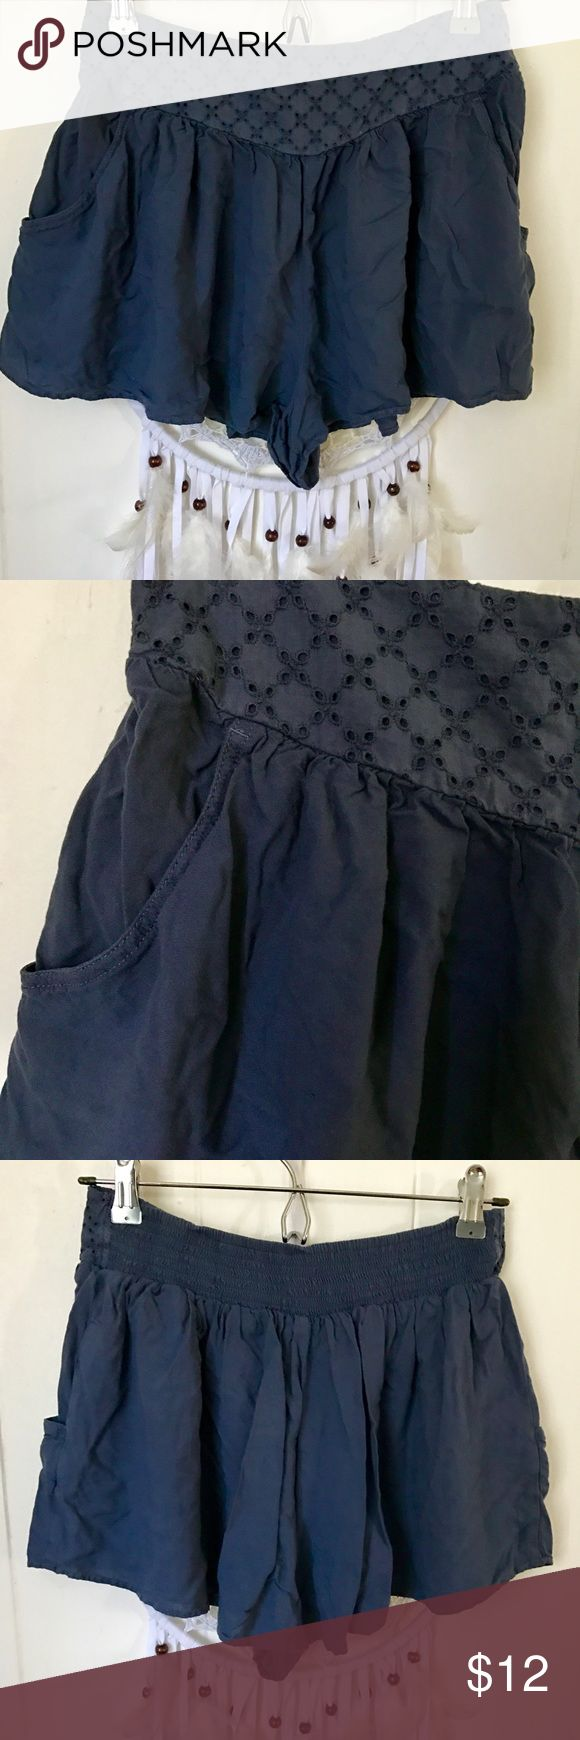 American Eagle Outfitters Blue Eyelet Shorts M medium high waist shorts, looks like a skirt. very cute embroidered waist line. Medium American Eagle Outfitters Shorts